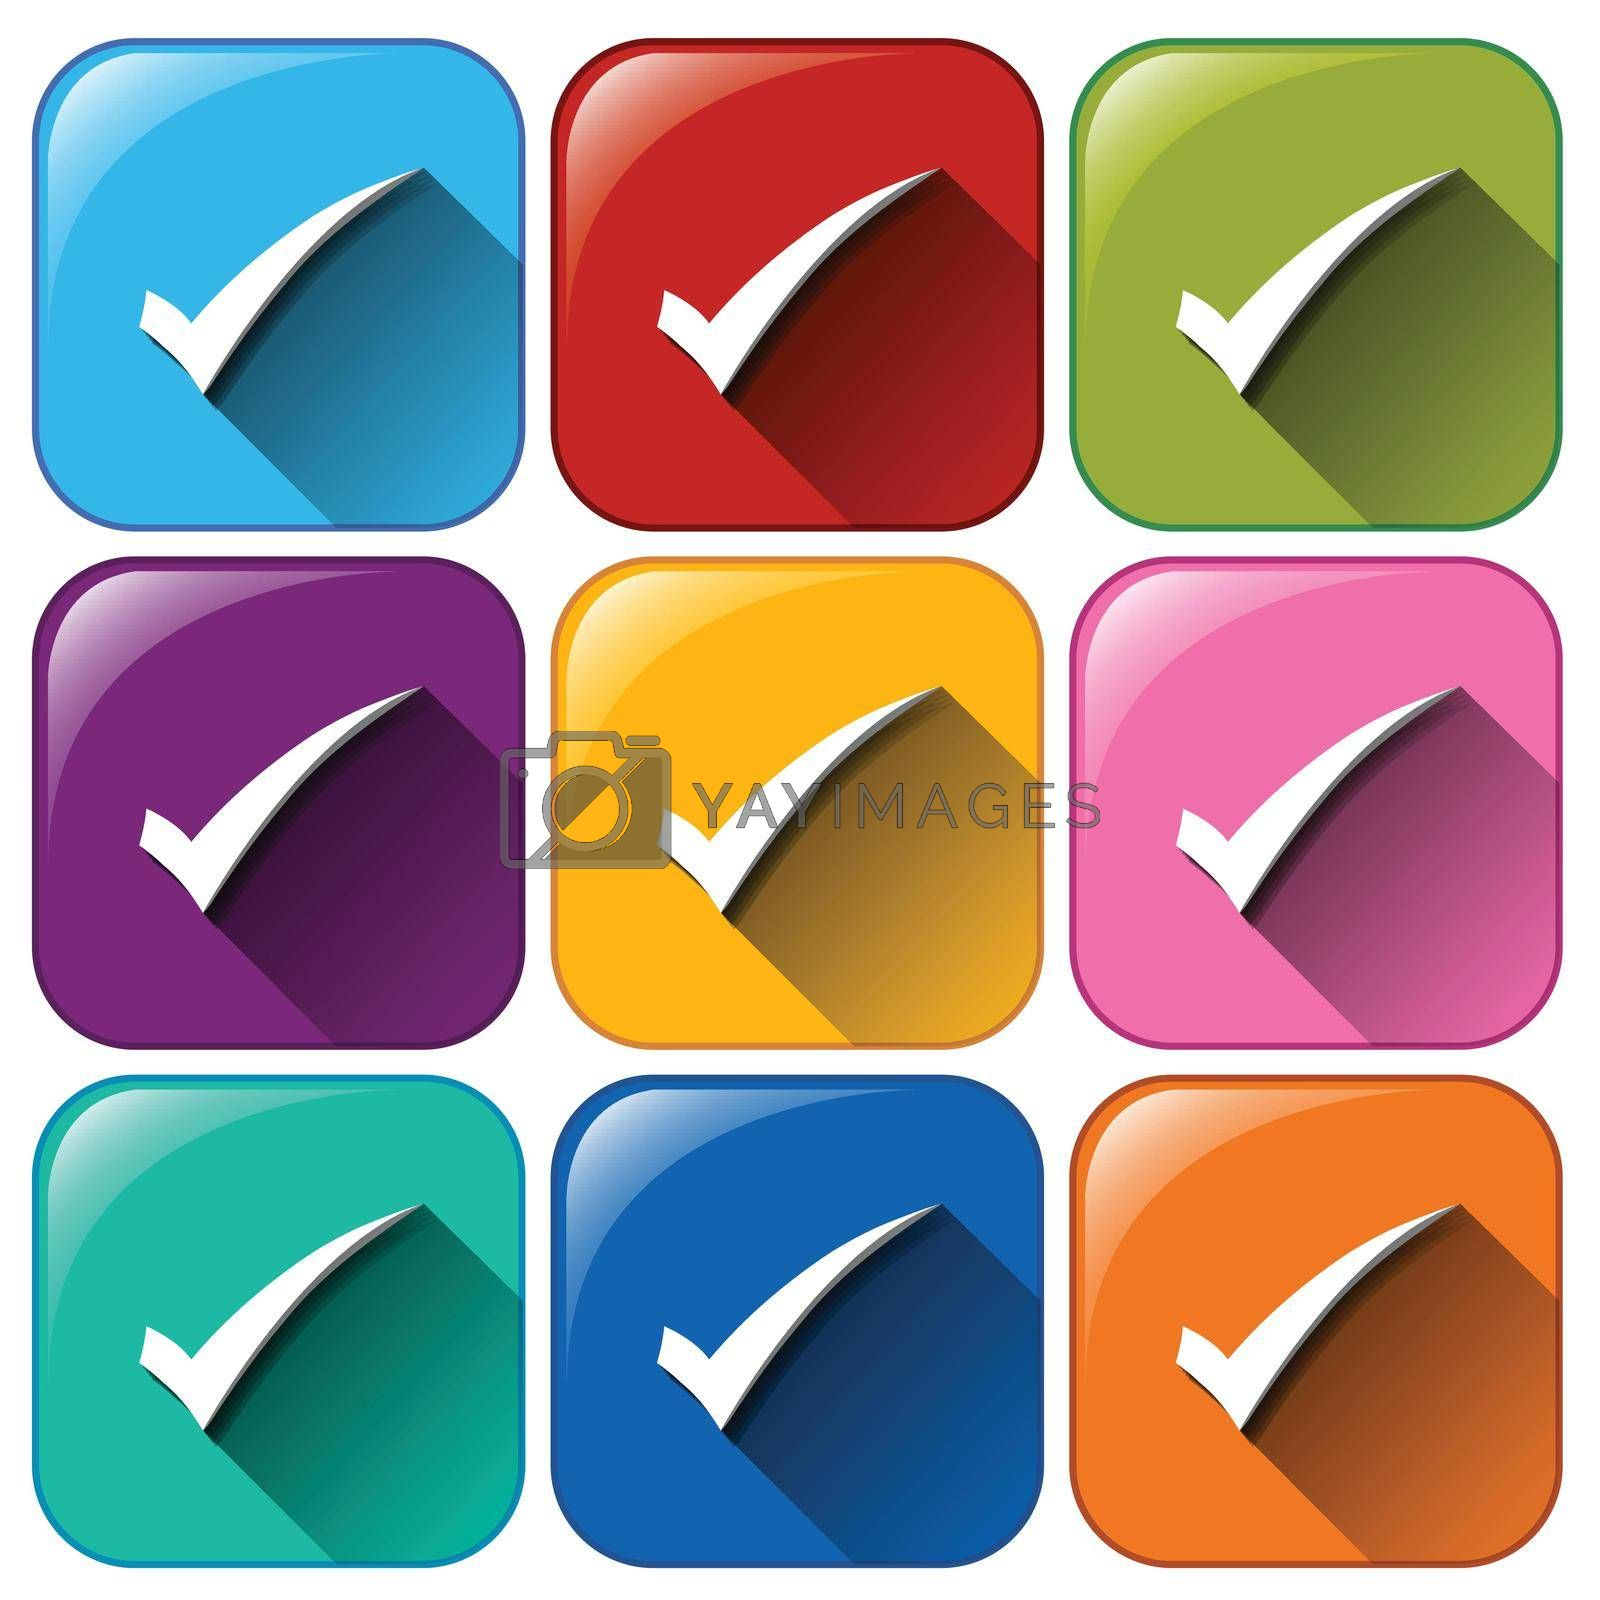 Royalty free image of Buttons with check marks by iimages